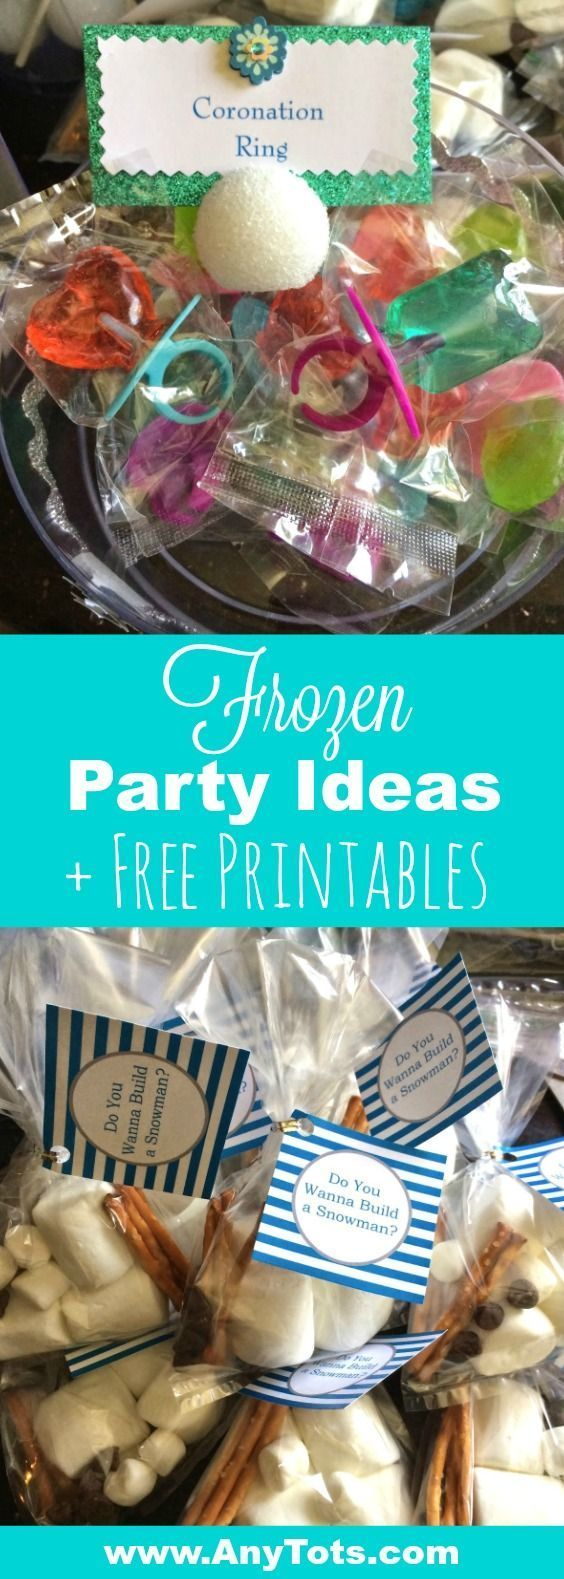 "Frozen Party Ideas plus Frozen Free Printable Favor Tag. Enjoy the ""do you wanna build a Snowman"" Free Printable to go with your frozen treat bag and also add some coronation ring into your Frozen Birthday Party. More Frozen Free printable on the blog -> http://www.anytots.com"